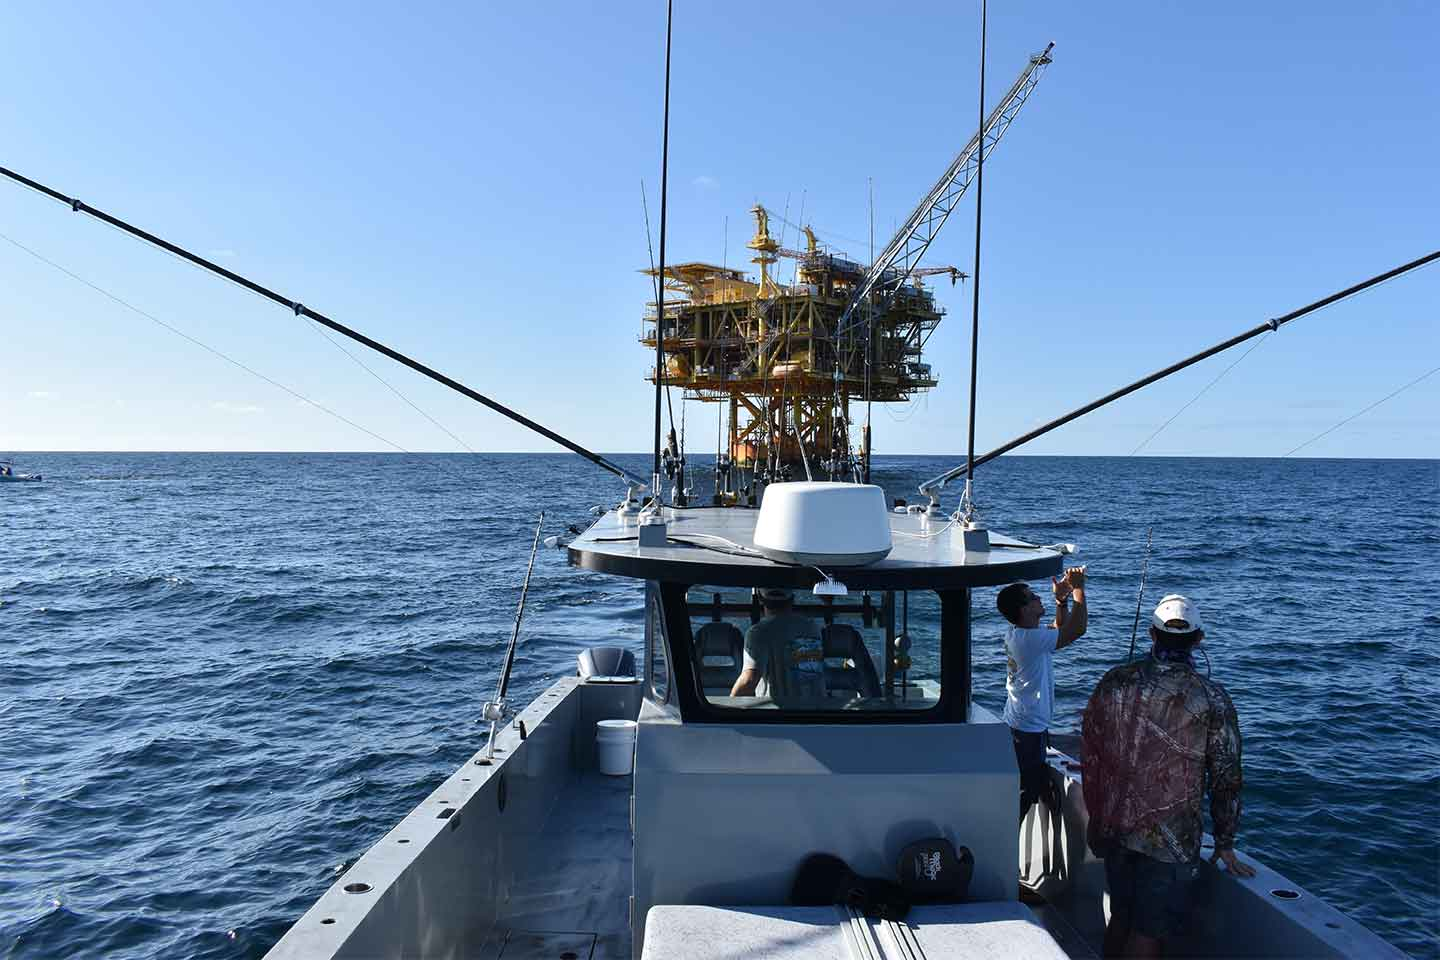 paradise outfitters charter tuna fishing at an oil rig in the Louisiana Gulf